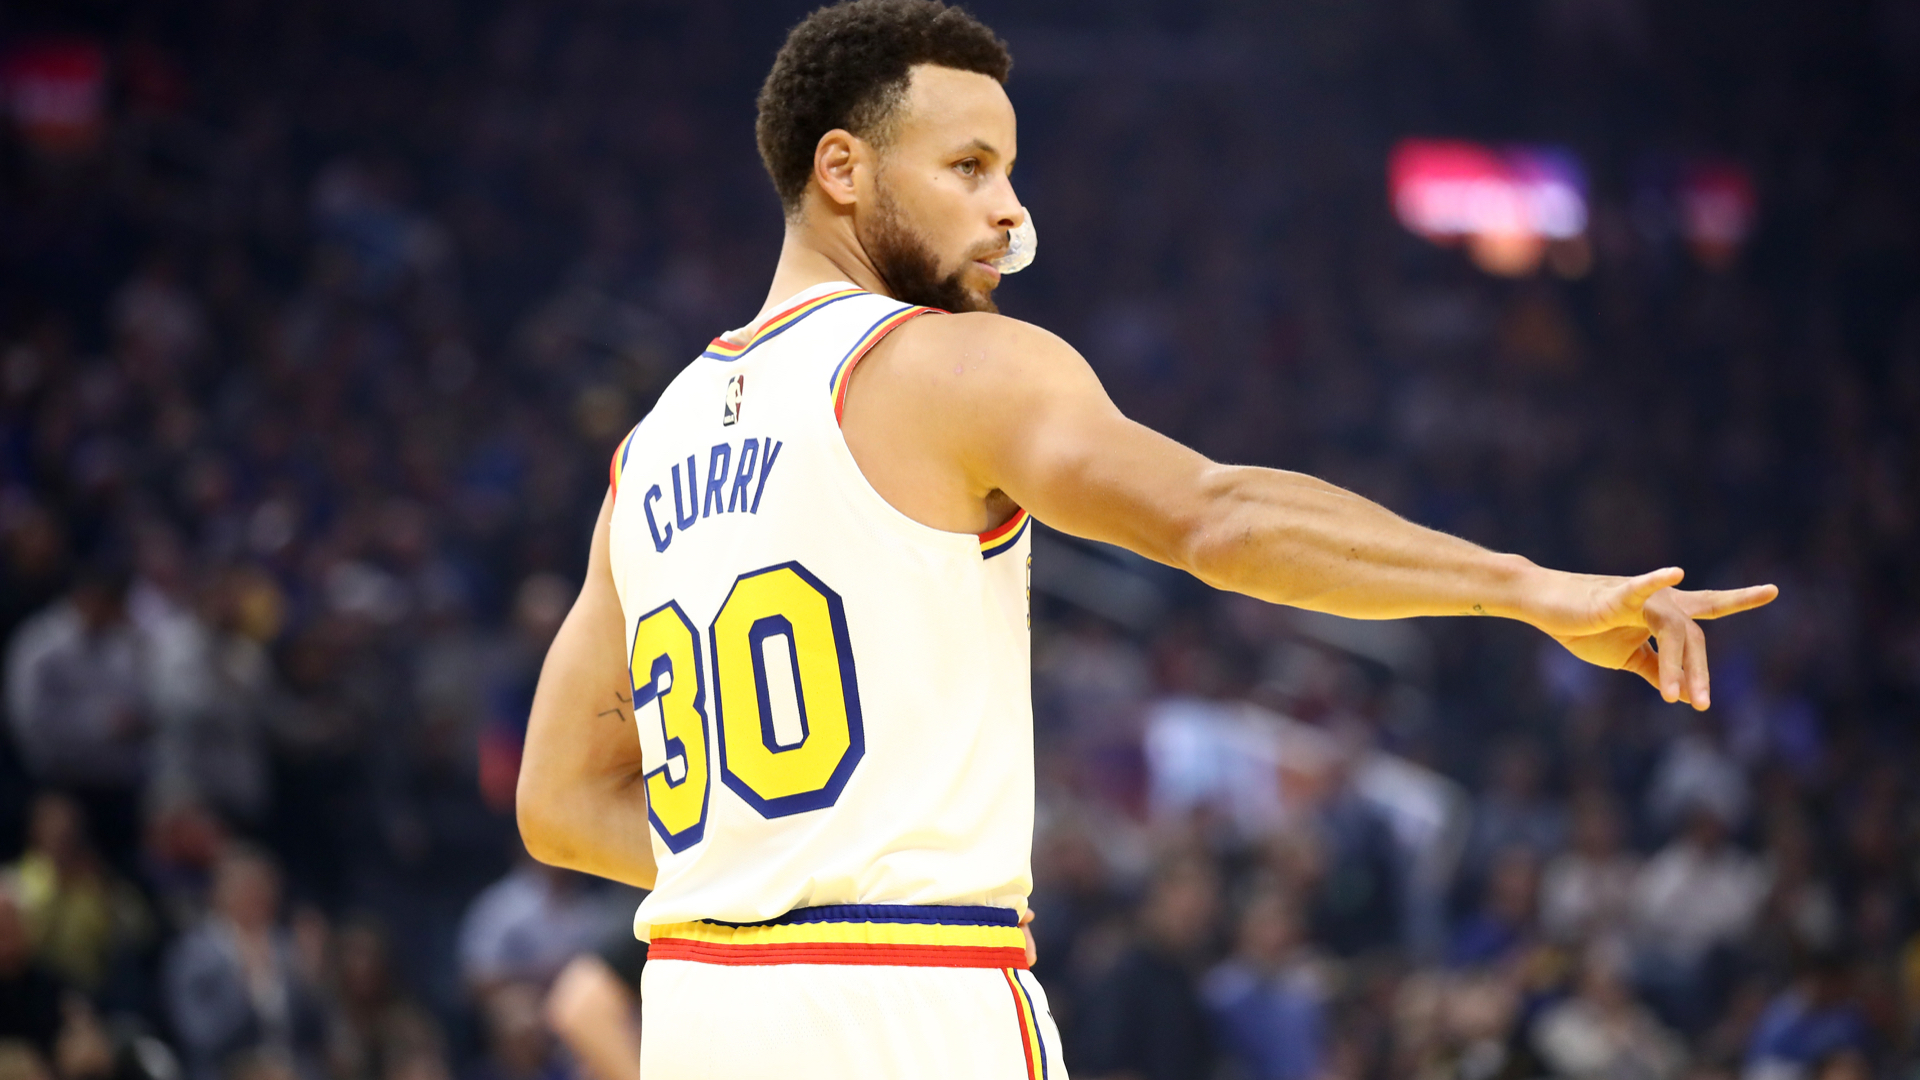 2020 NBA Christmas schedule: Warriors included, Rockets nixed from seasonal slate of games